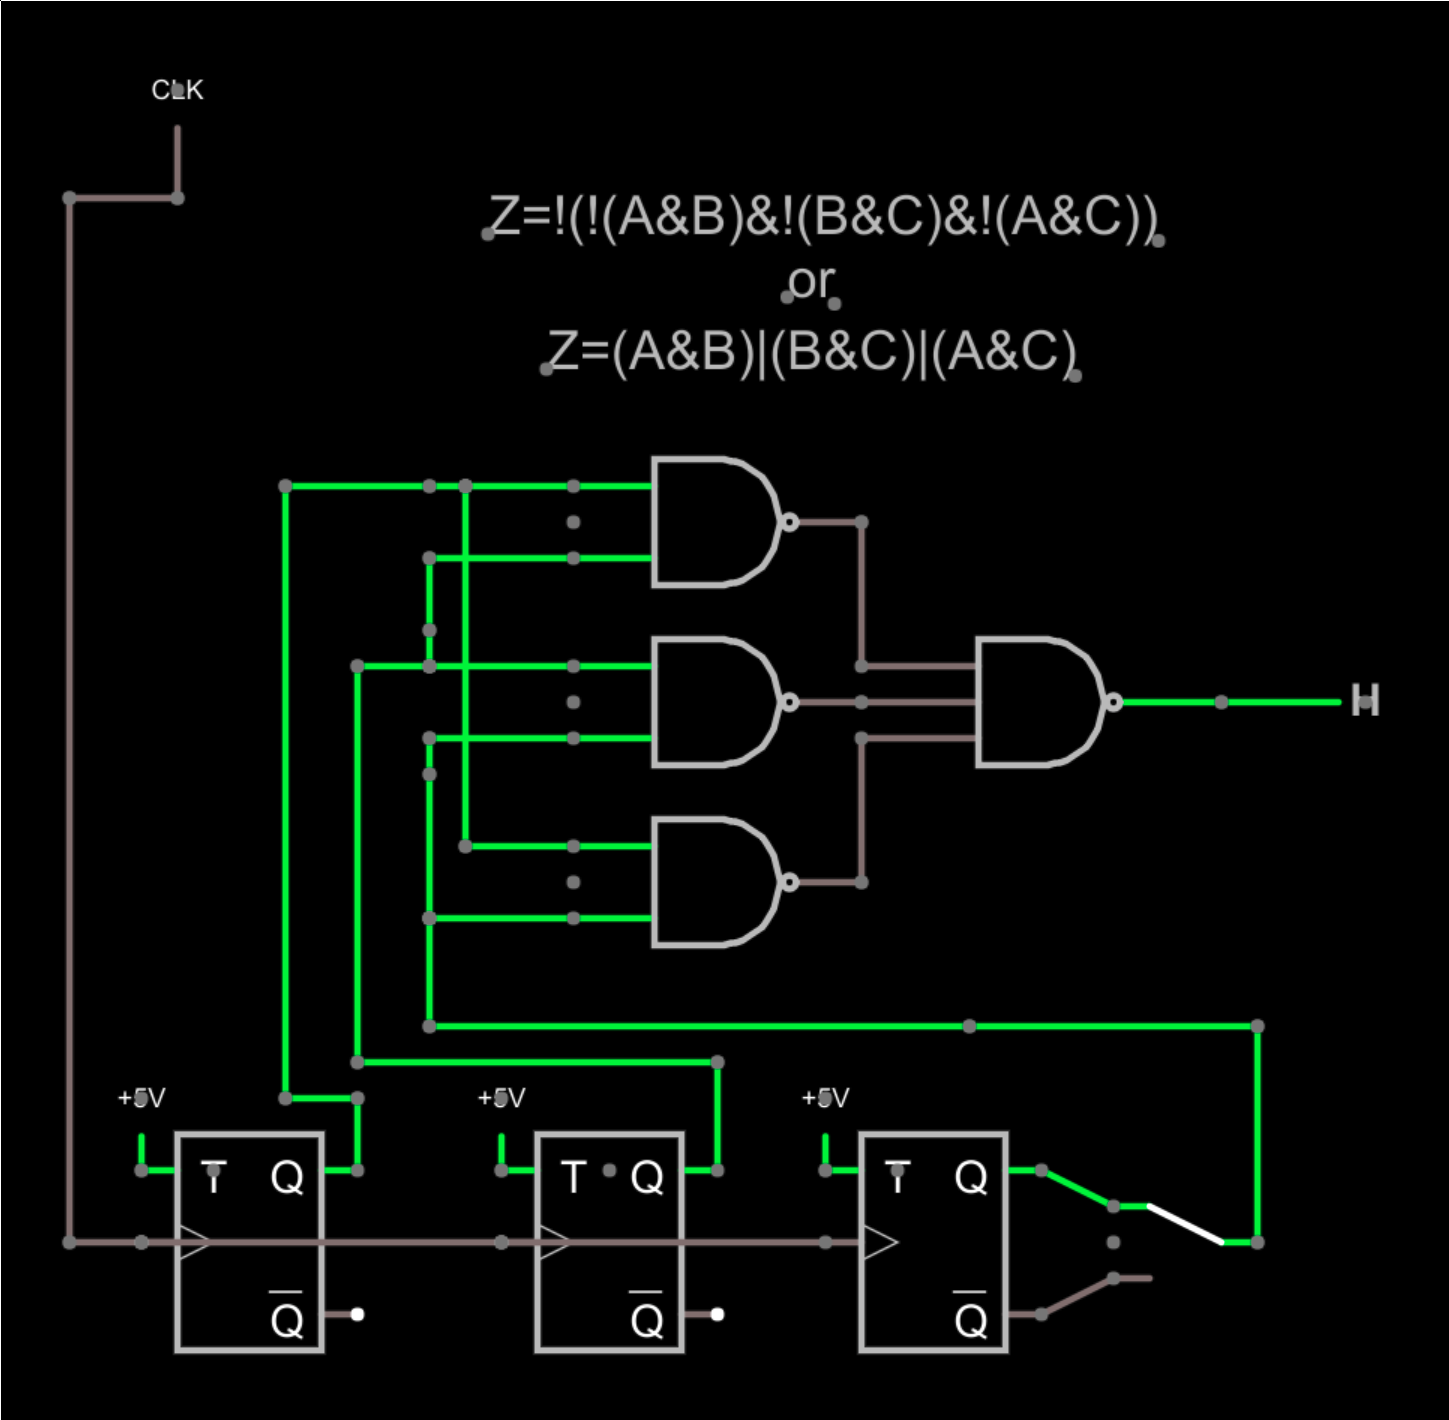 In This Nand Gate Circuit Diagram We Are Going To Pull Down Both Input